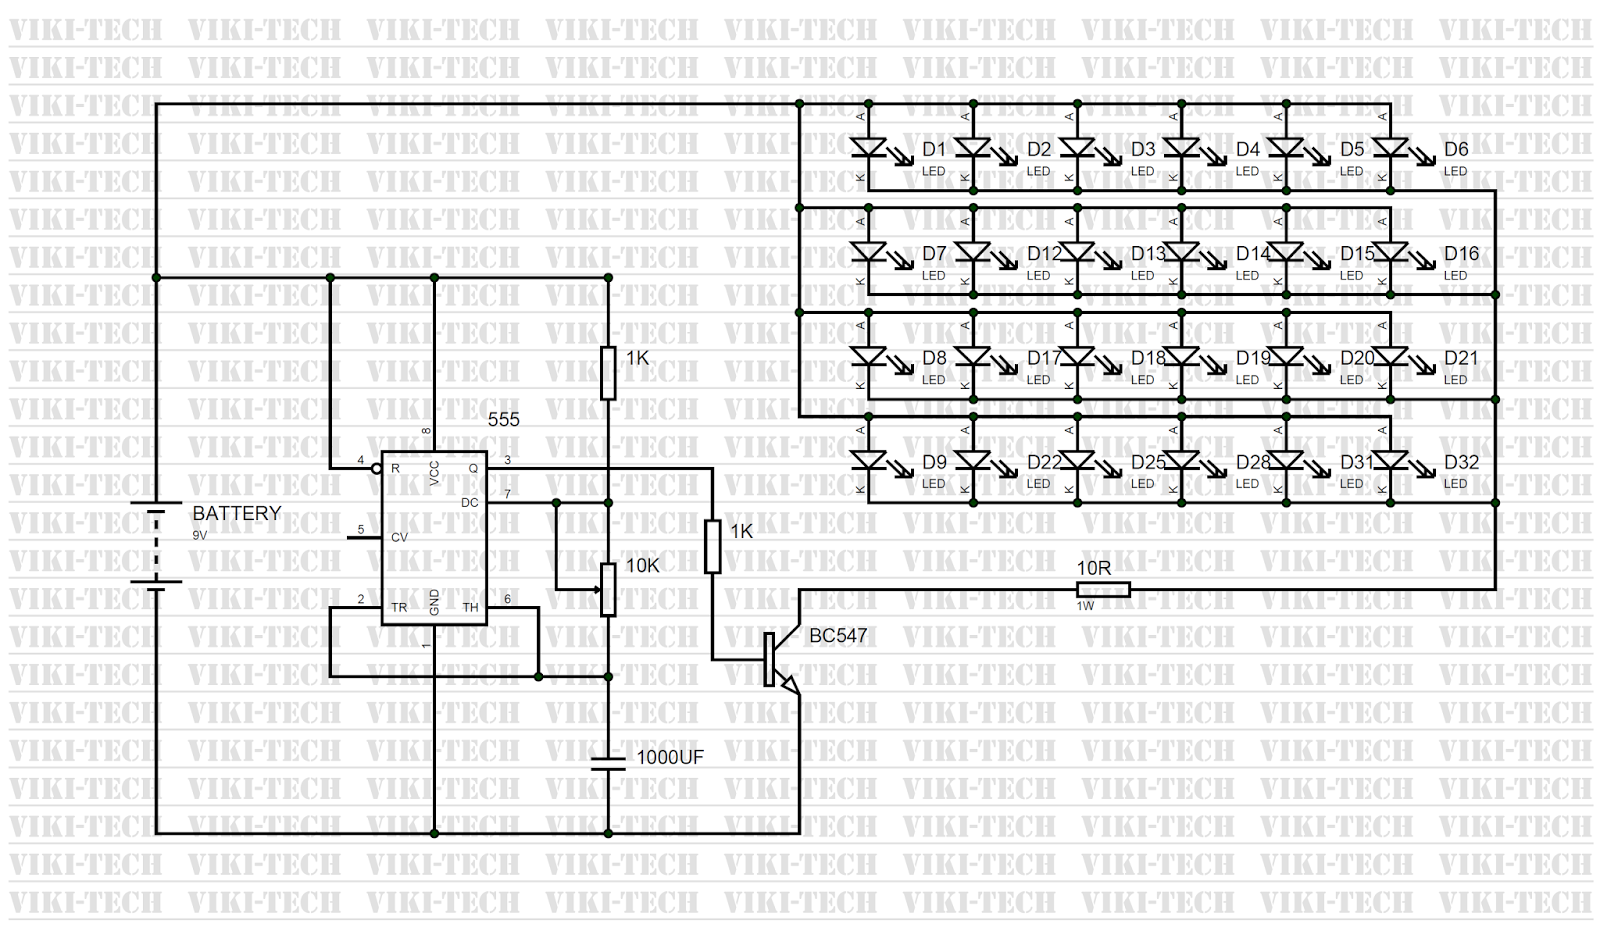 10 watt led driver circuit diagram 3 phase contactor wiring 3x3x3 cube using 555 timer